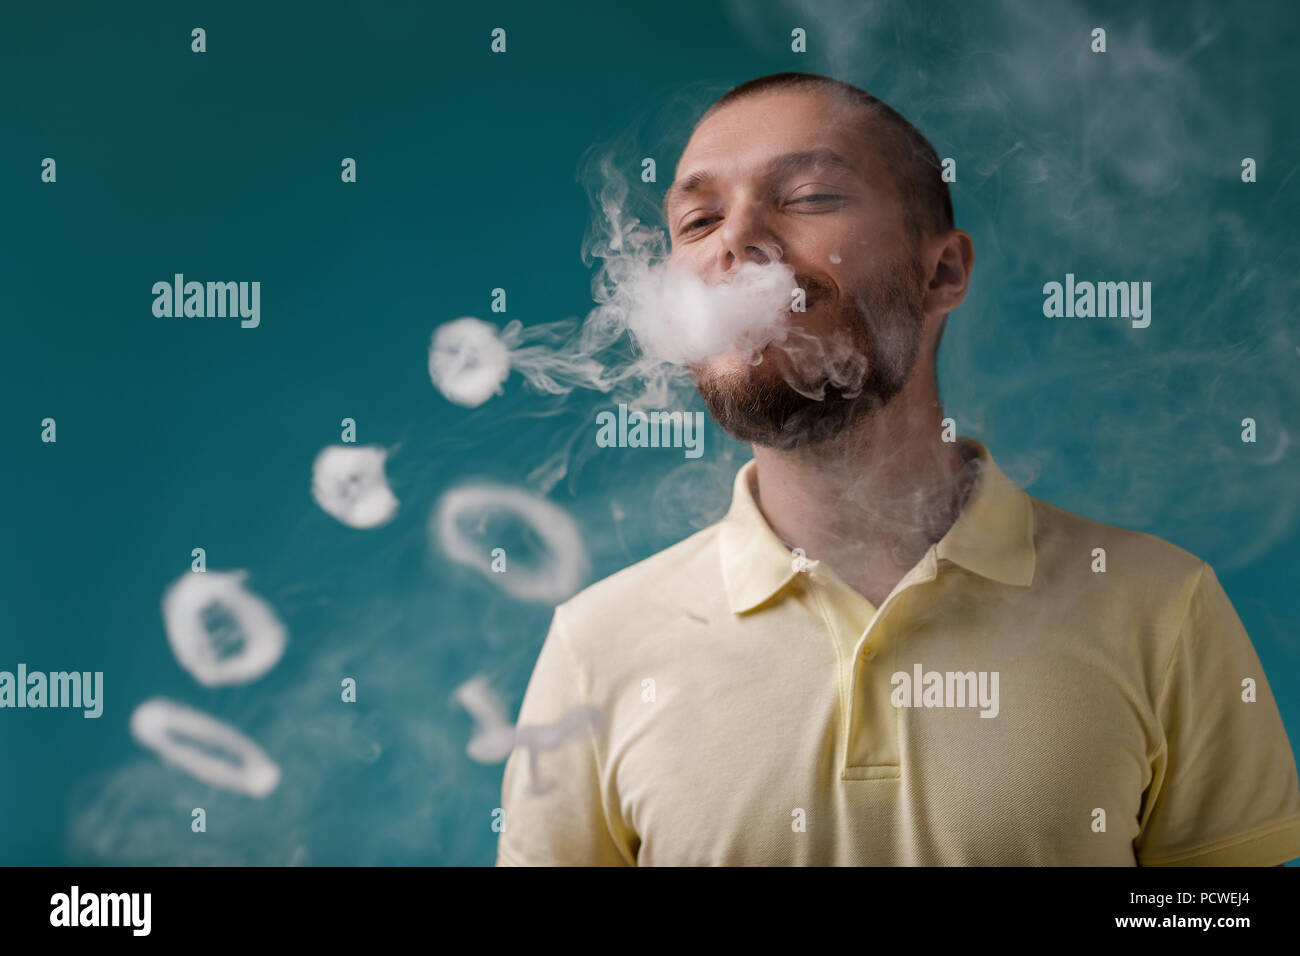 vaping man launches ring of the smoke - Stock Image